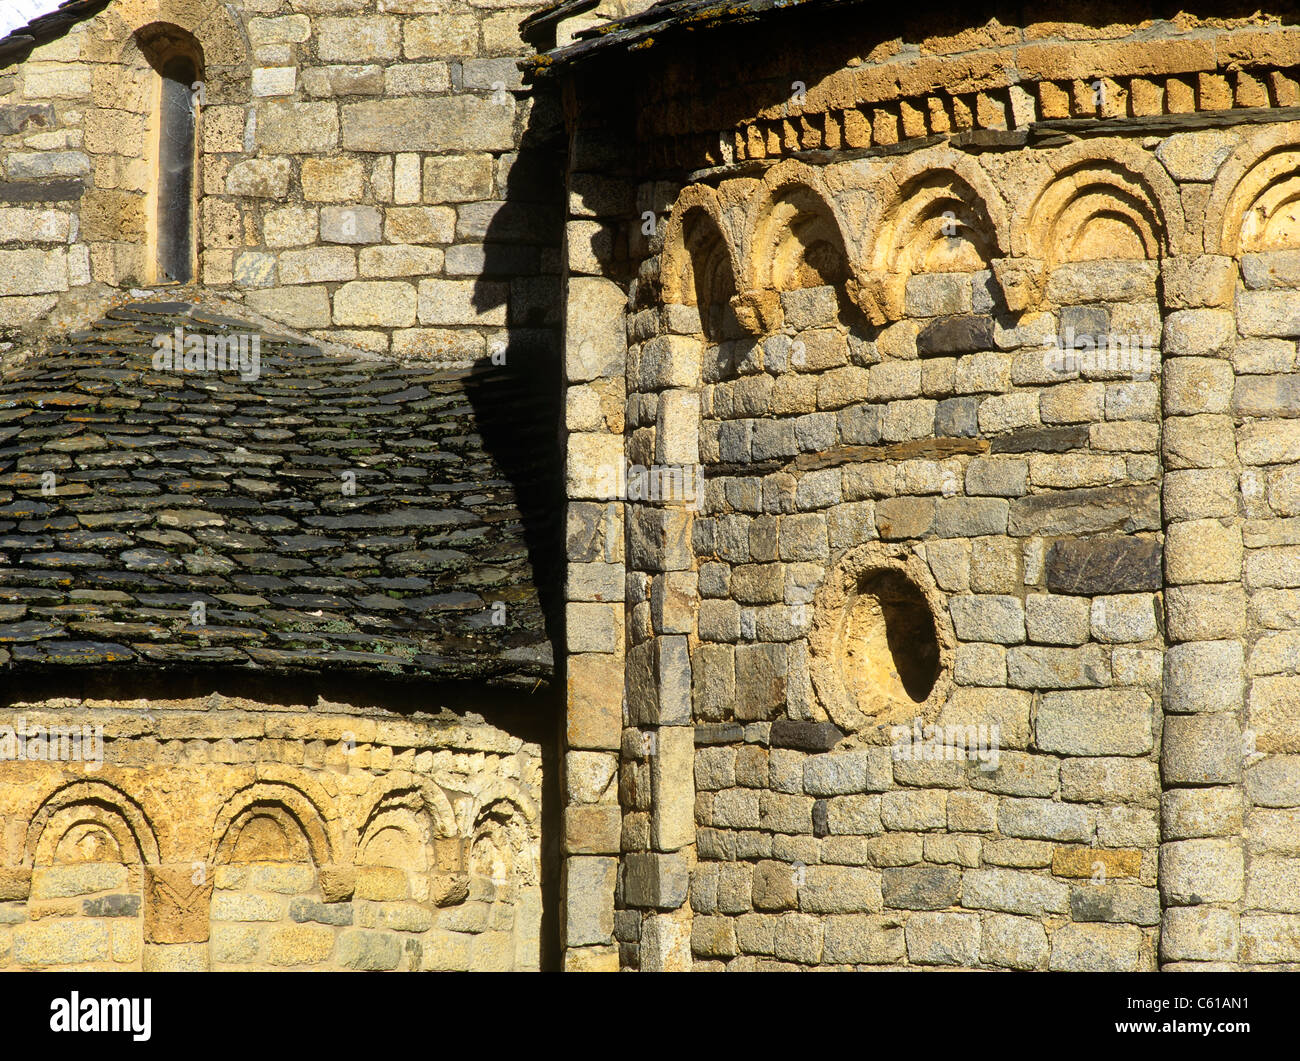 Sant Climent de Taüll World Heritage romanesque church in Vall de Boí Alta Ribagorça, Cataluña, - Stock Image